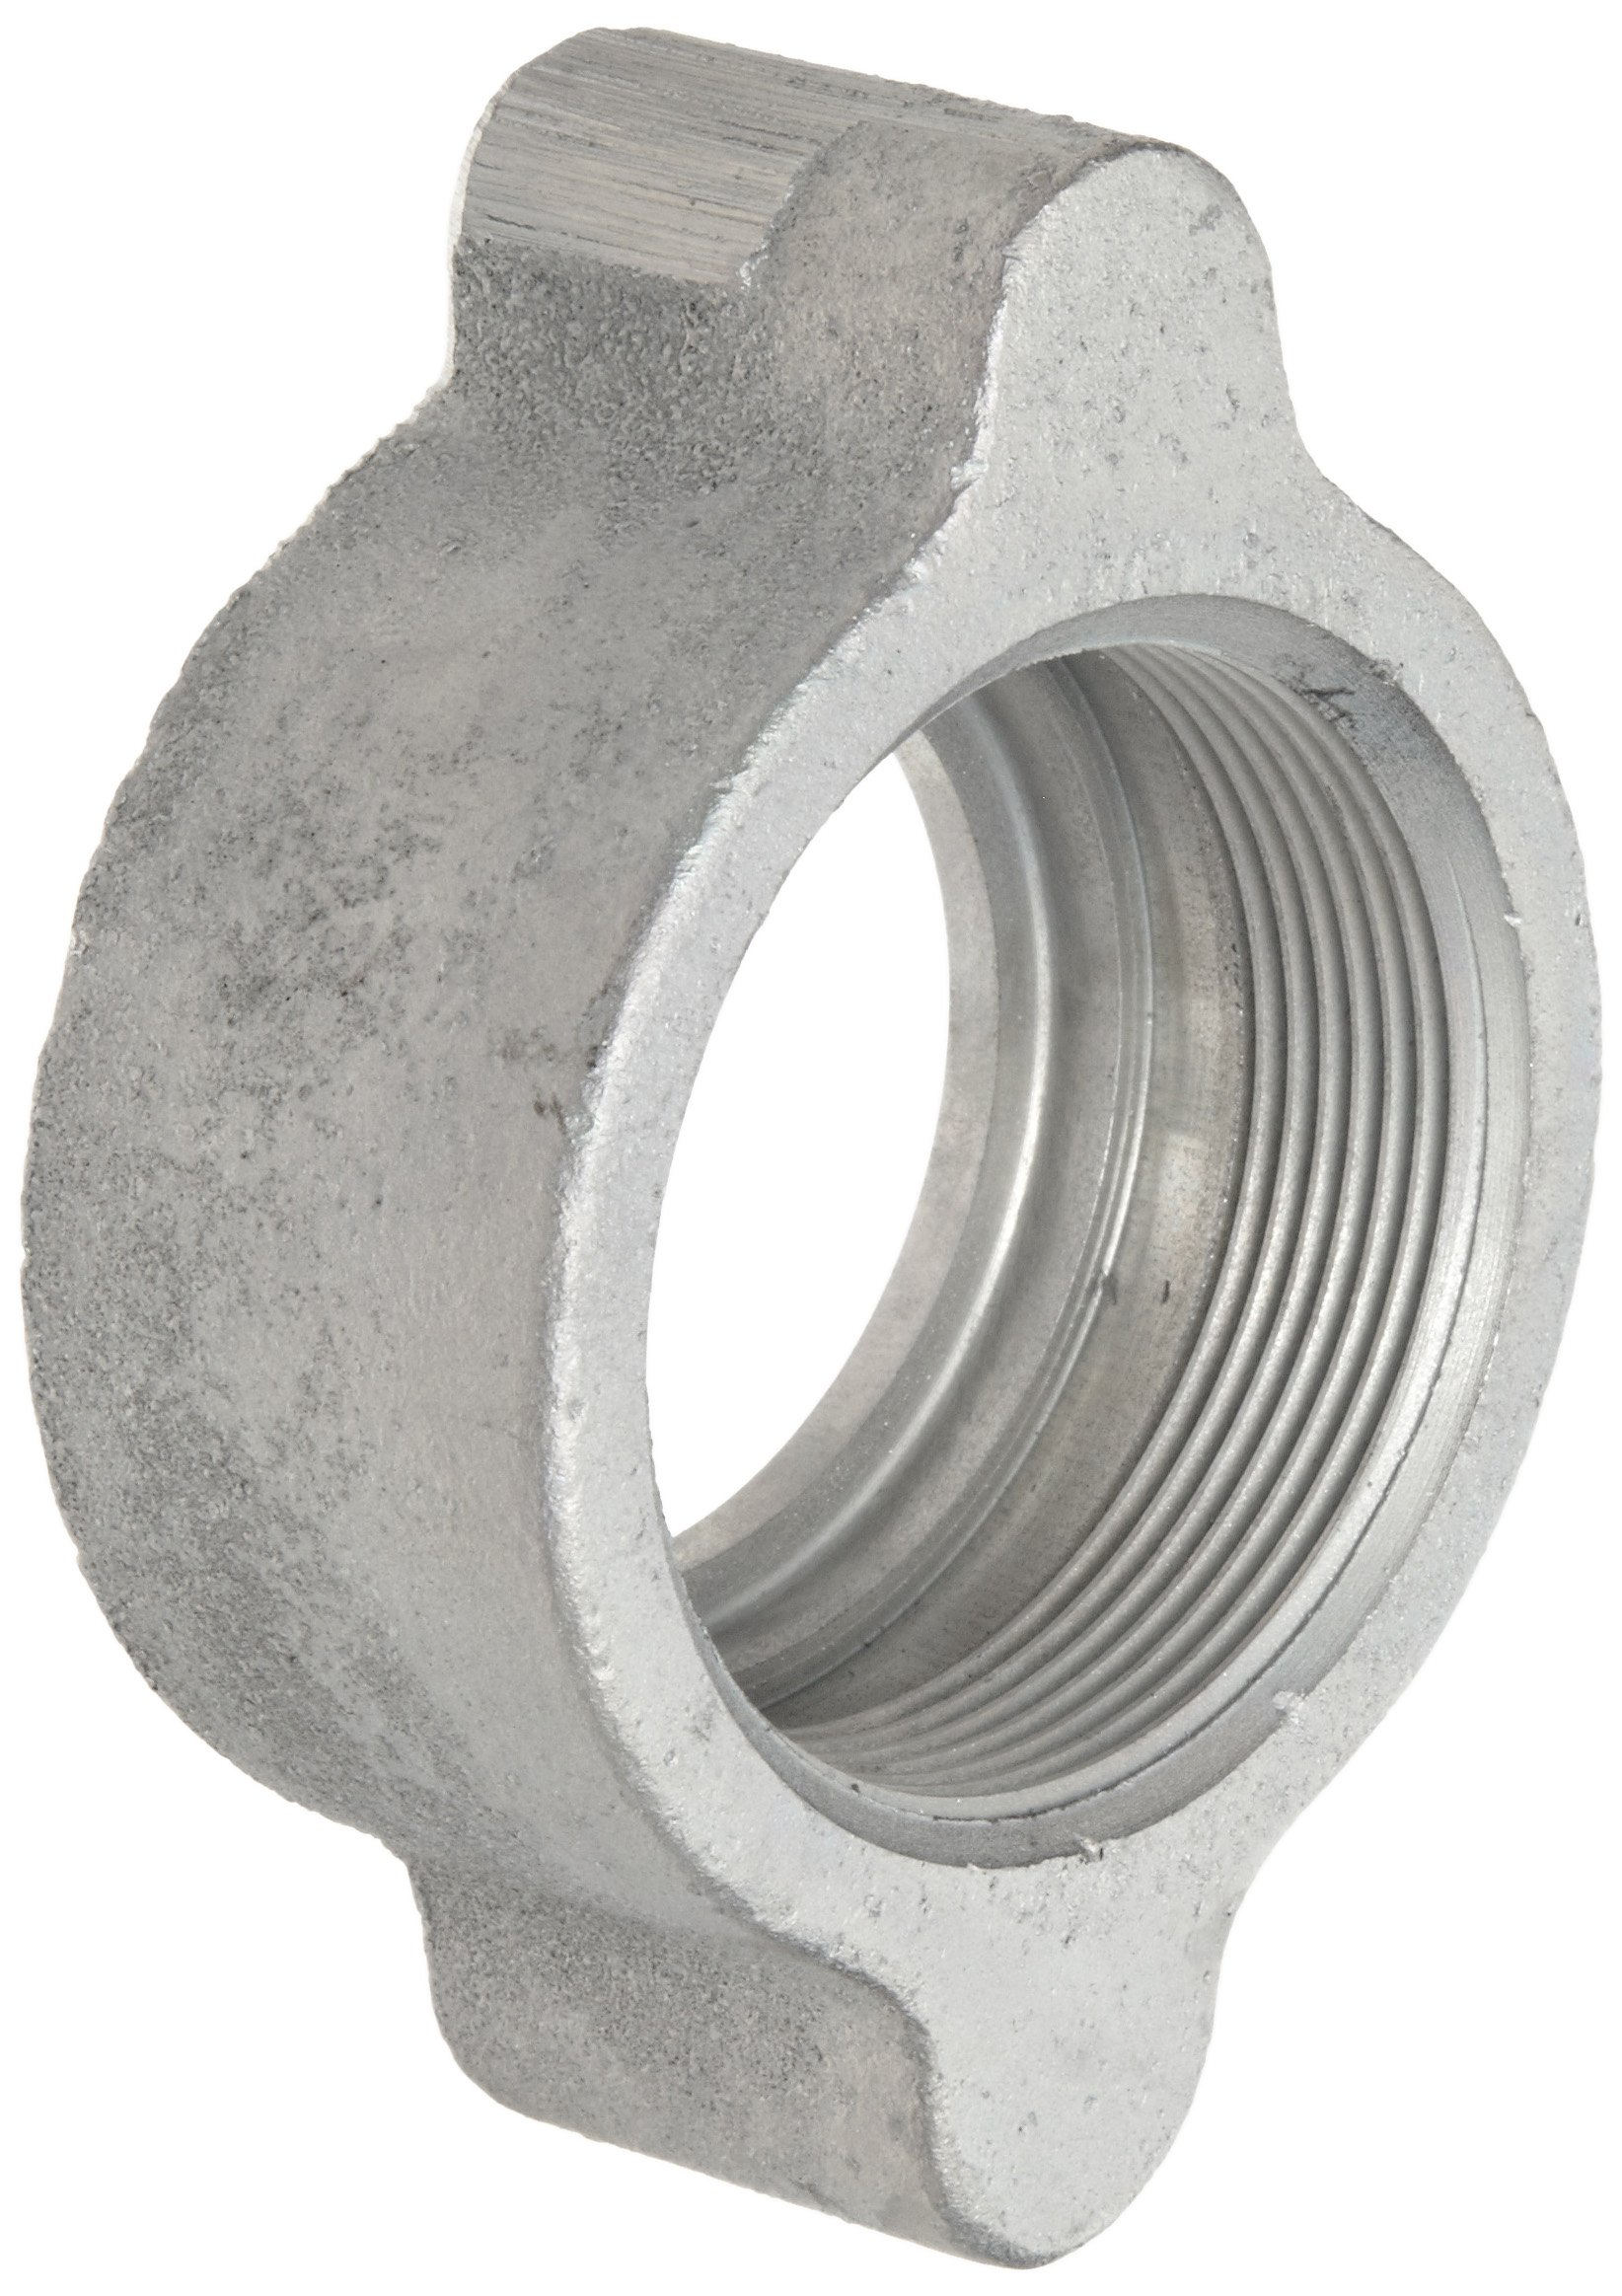 Dixon Boss B17 Plated Iron Hose Fitting, Wing Nut for 1-1/4'' and 1-1/2'' Boss Washer Seal and GJ Boss Ground Joint Seal